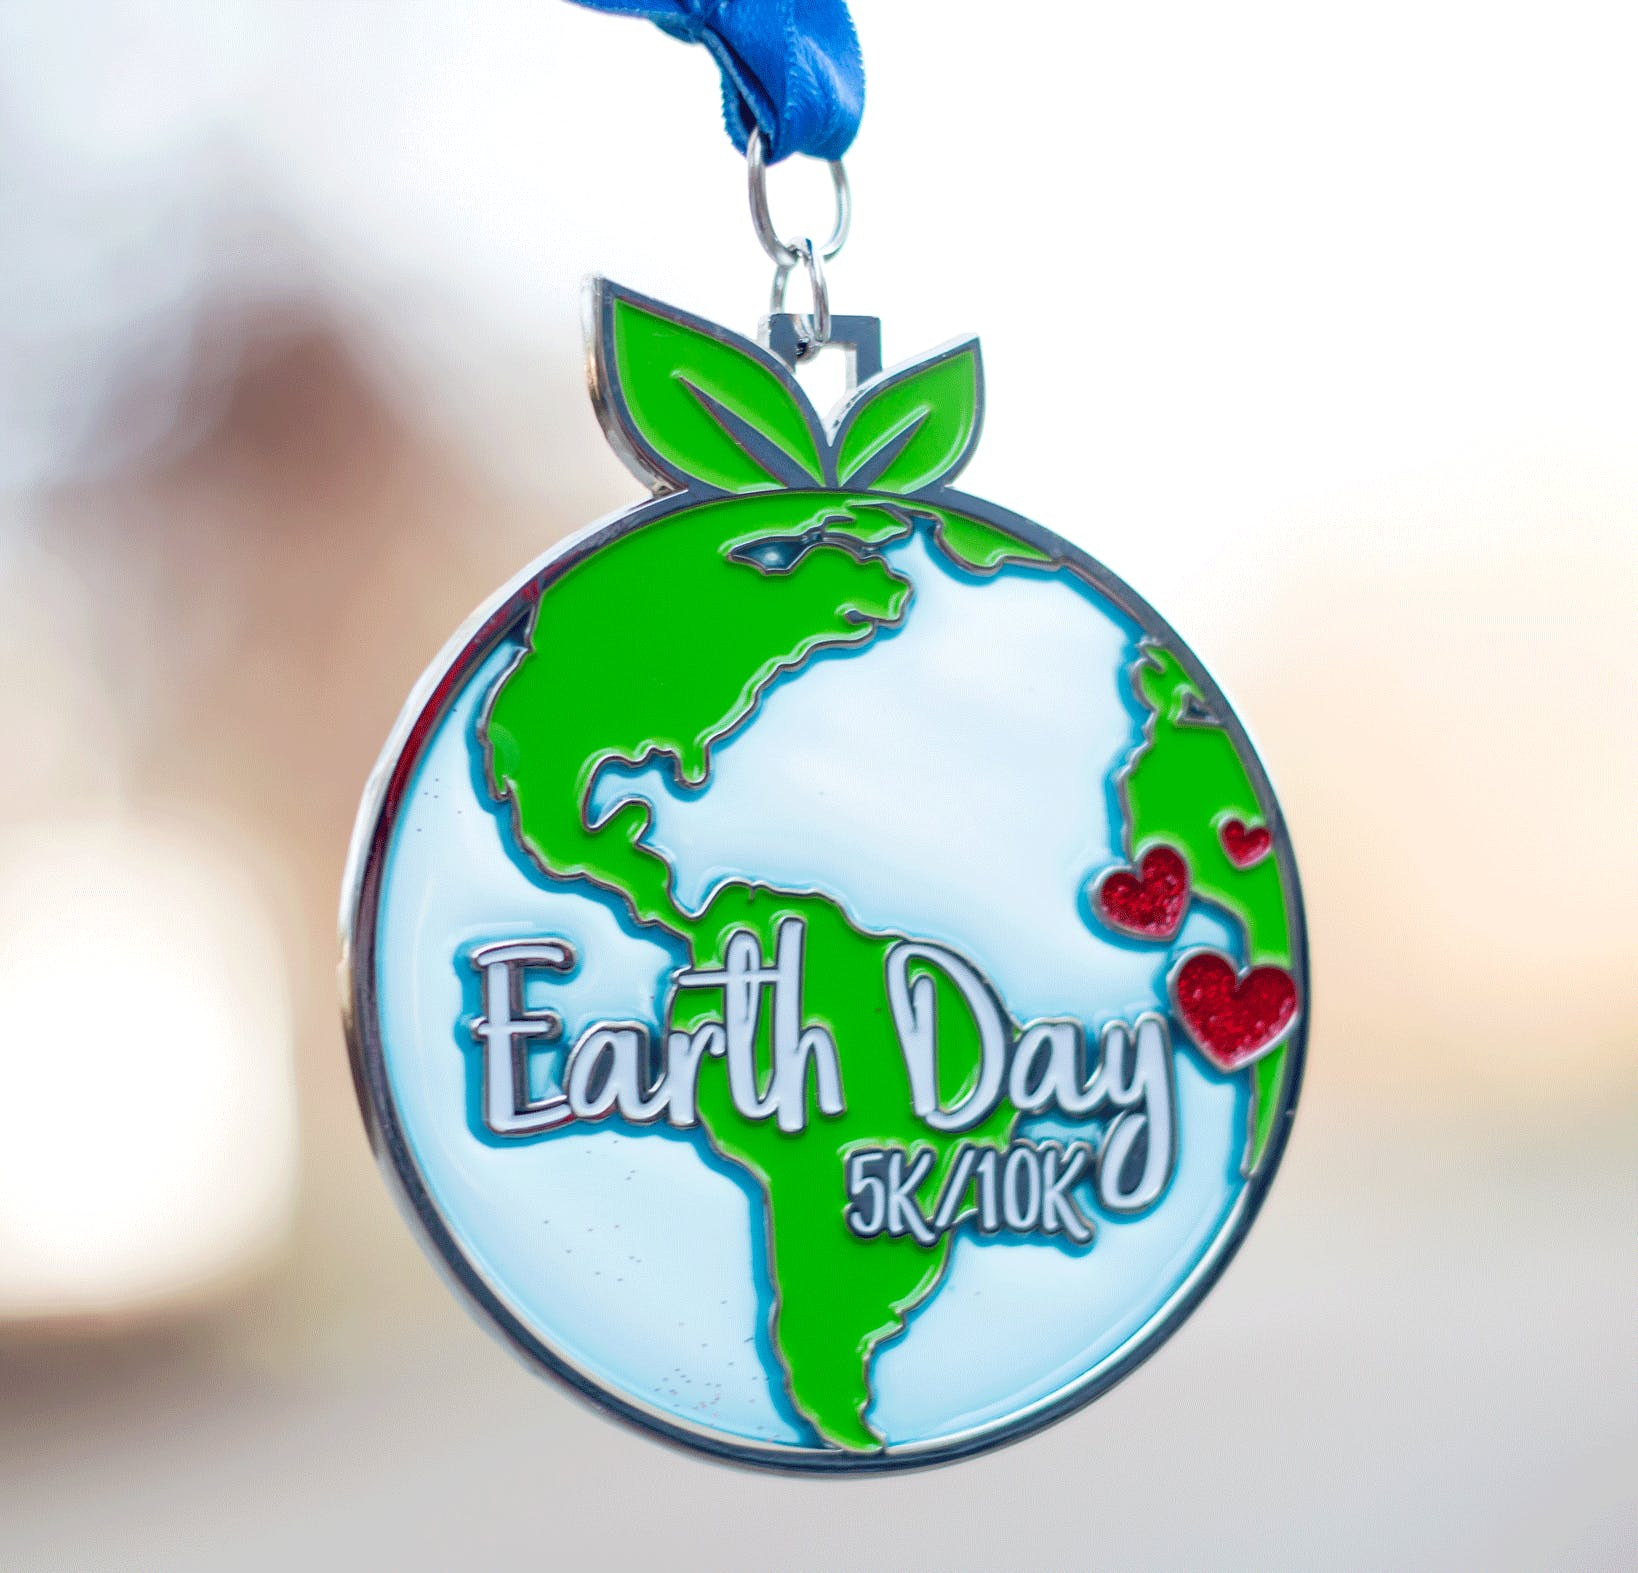 Now Only $10! Earth Day 5K & 10K- Scottsdale